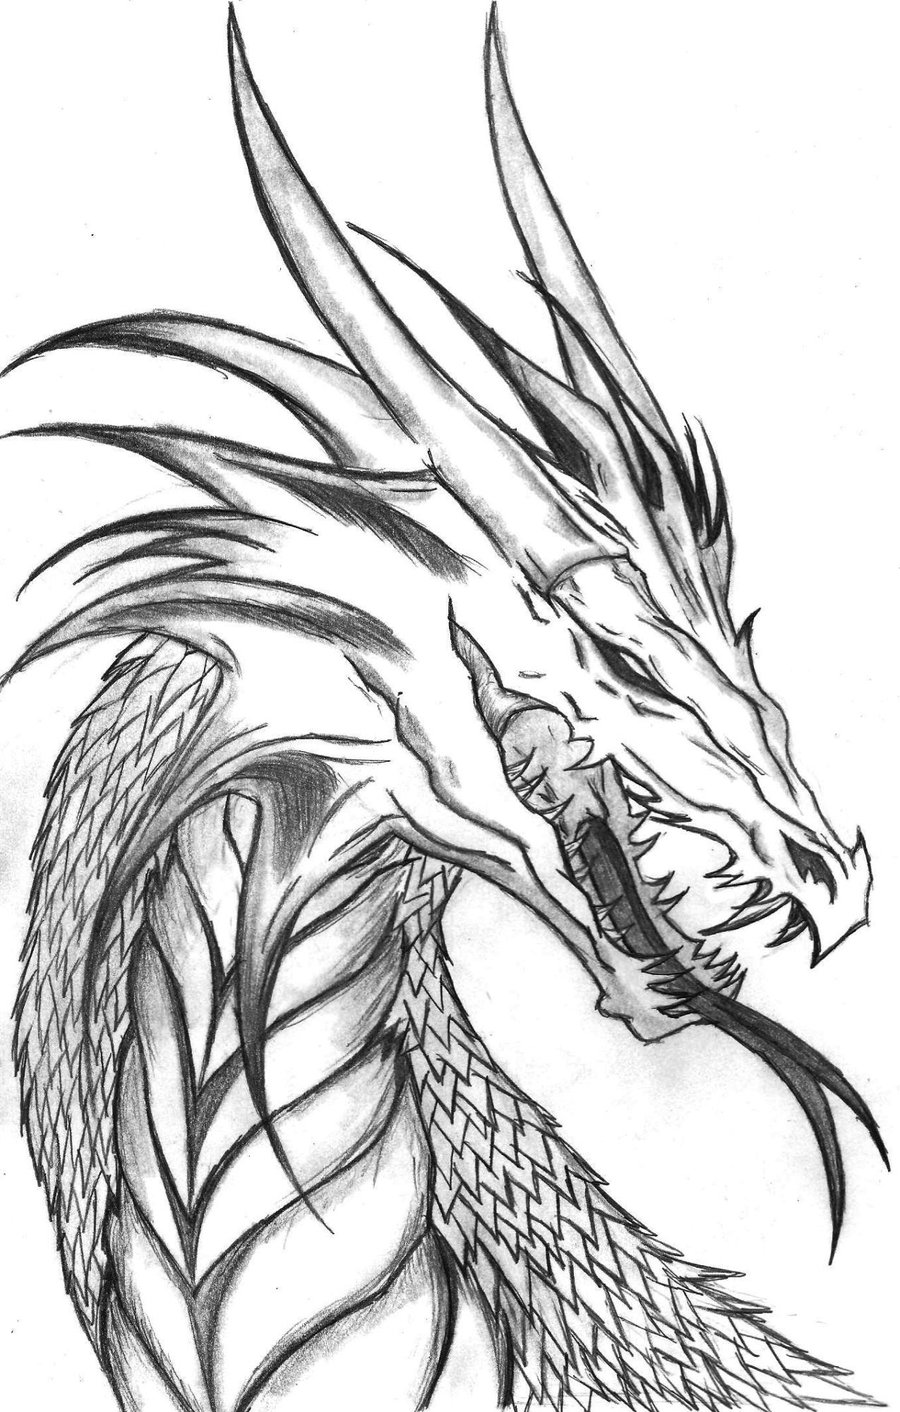 14214555046955316 additionally How To Draw Dragons as well Tiere Malen Mit Kindern also 491666484297958824 additionally 513199320009695806. on scary google earth